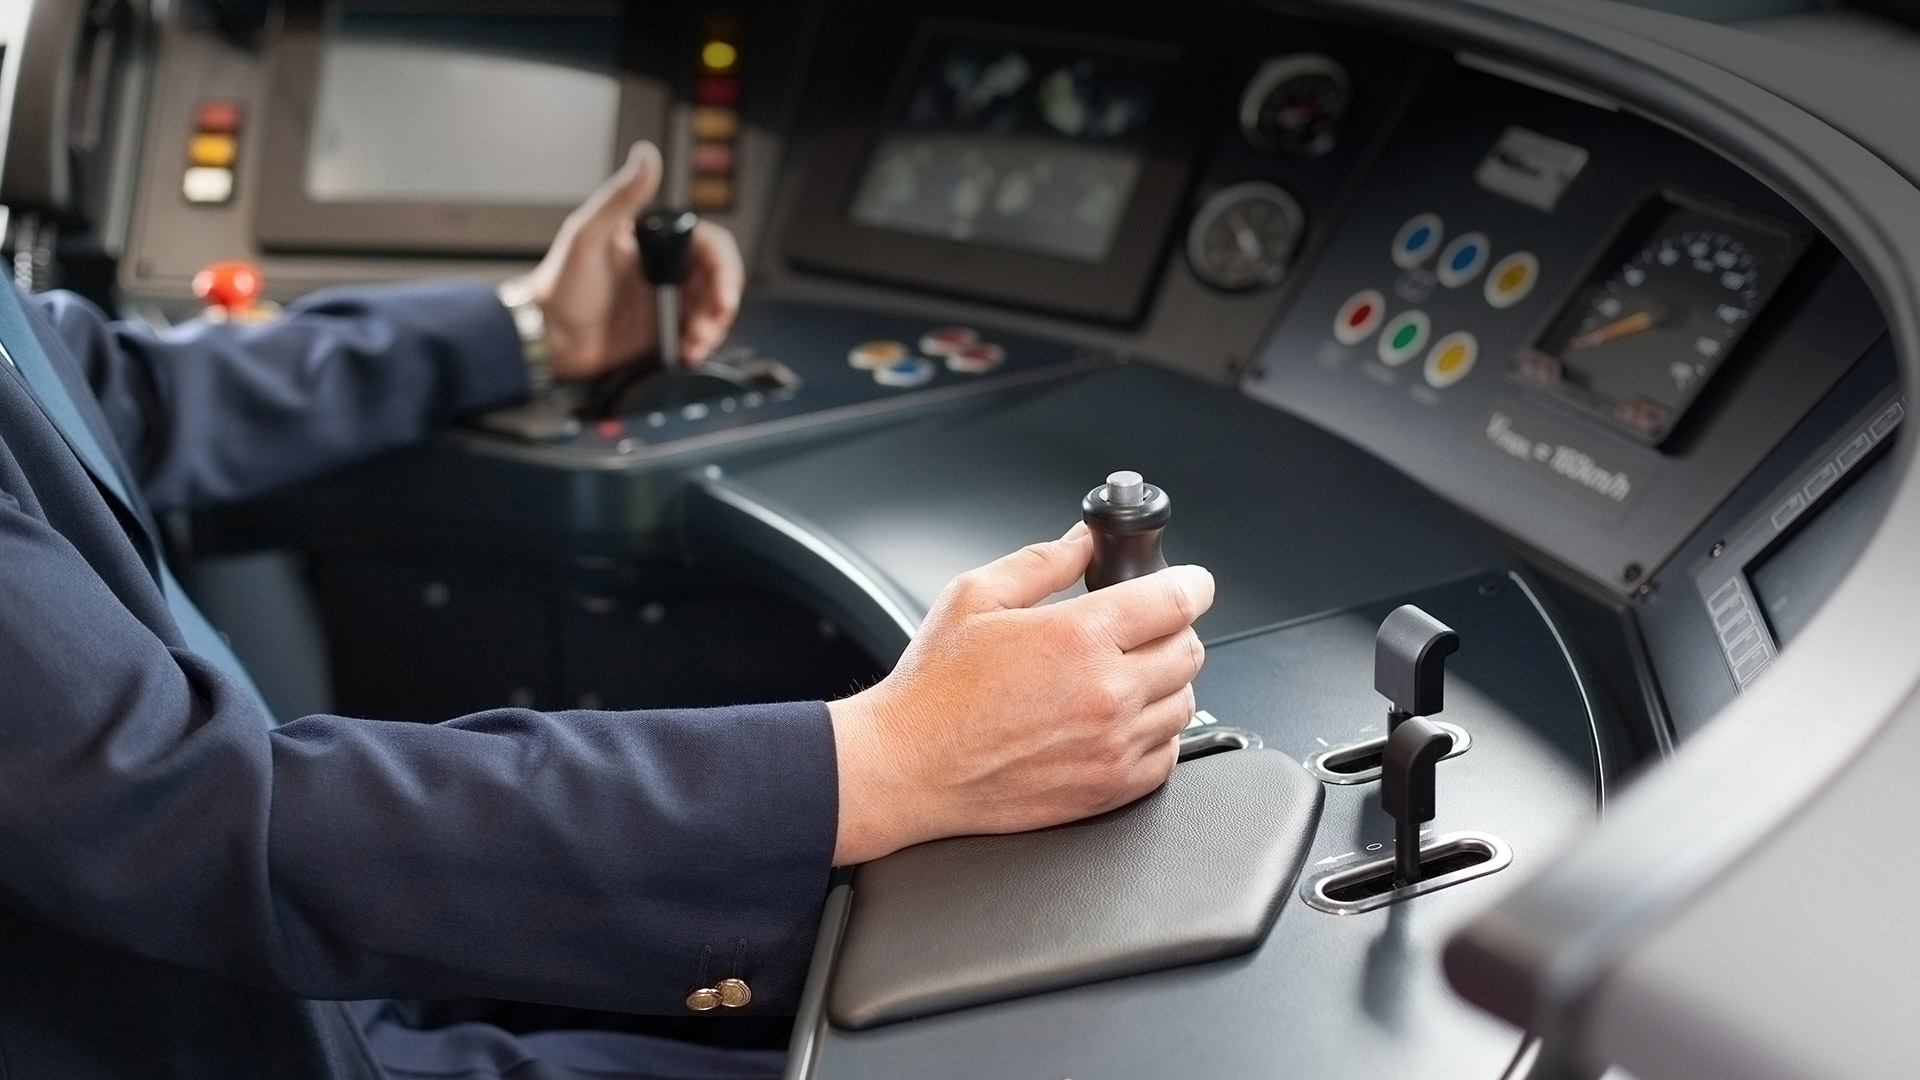 Train cockpit visualizes the topic of driver assistance systems: rotation rate sensors for driver assistance systems